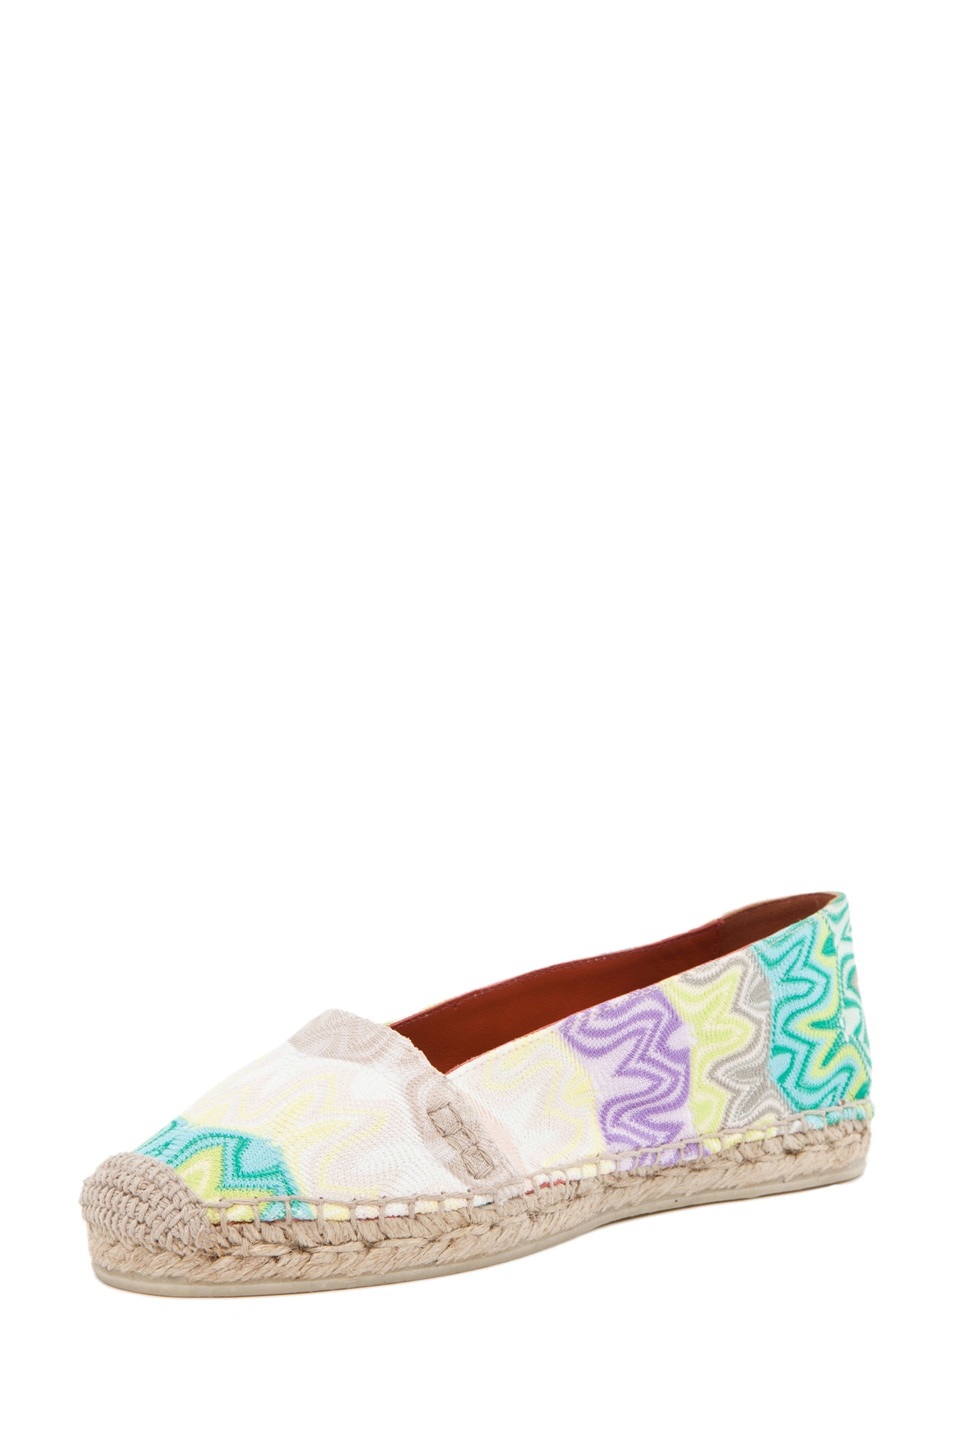 Image 2 of Missoni Espadrille Flat in Turquoise/Yellow Multi